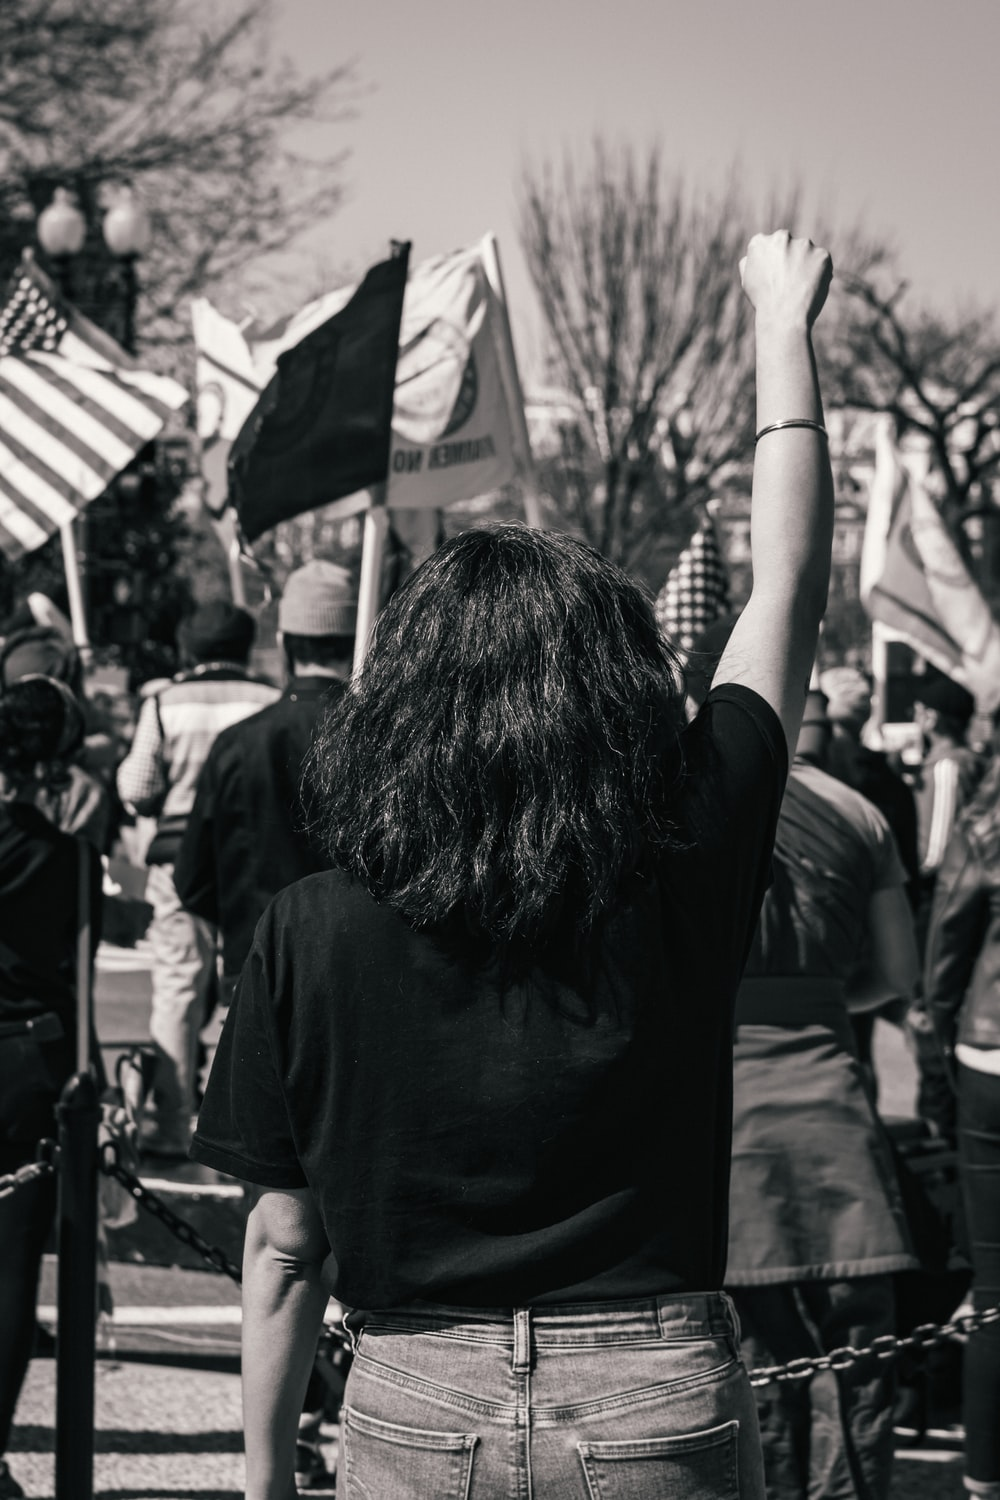 grayscale photo of woman in black shirt holding flag